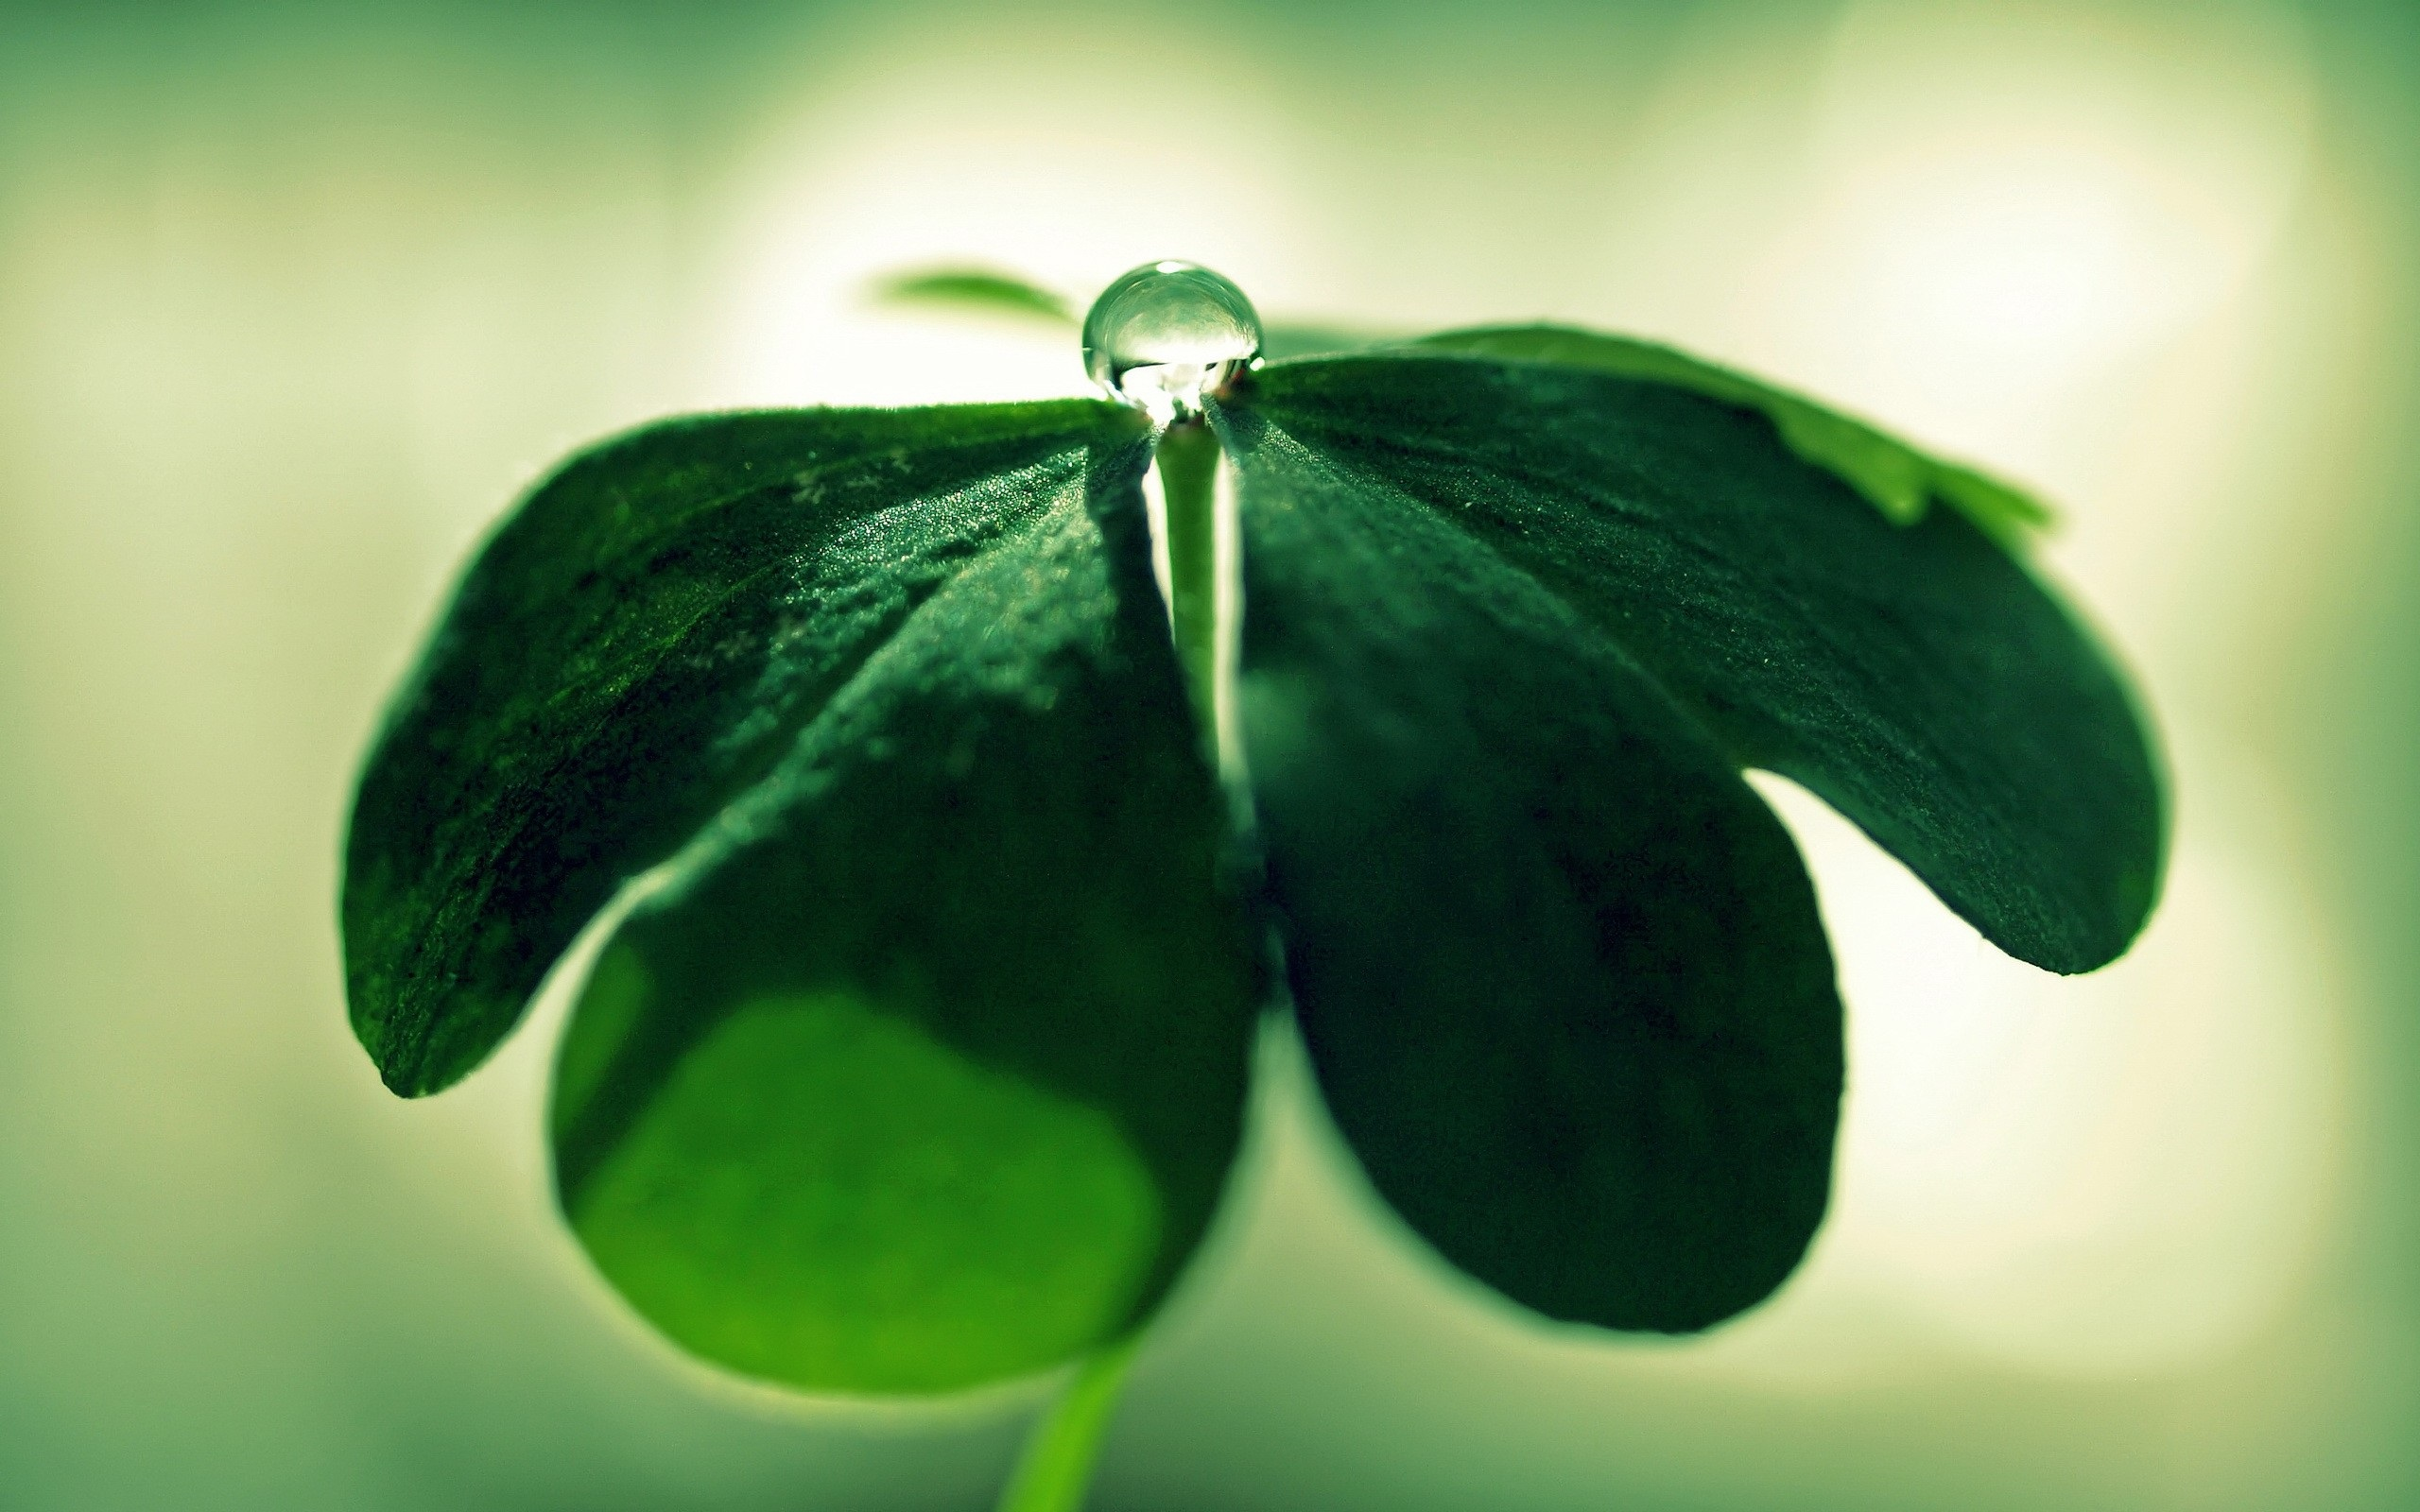 Photography Wallpaper Hd 1080p Clover Plant Close Up Green Dew Wallpaper Nature And